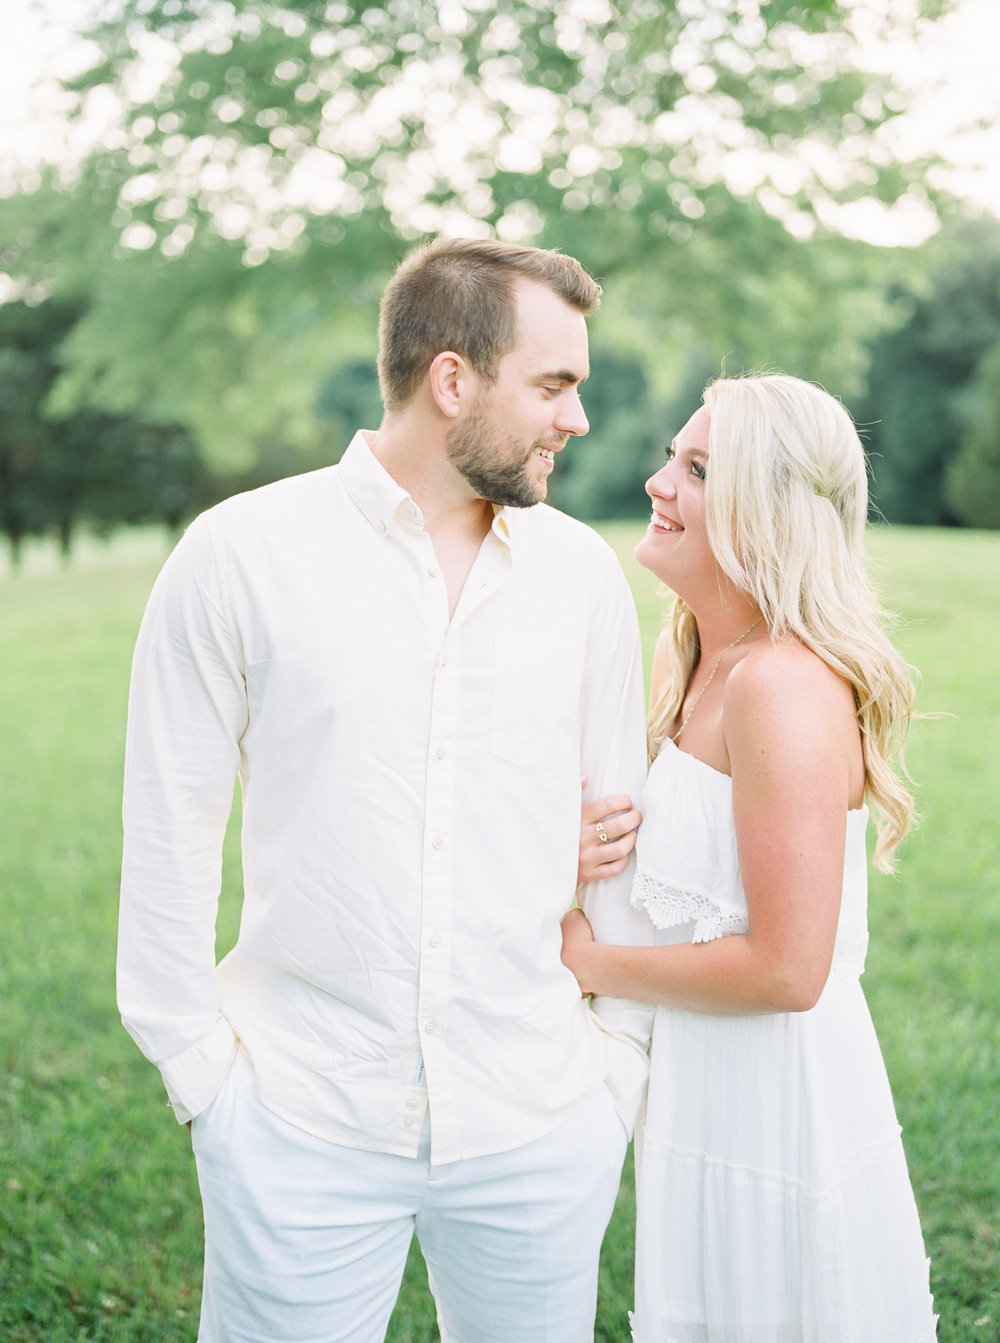 engagement session all white outfits